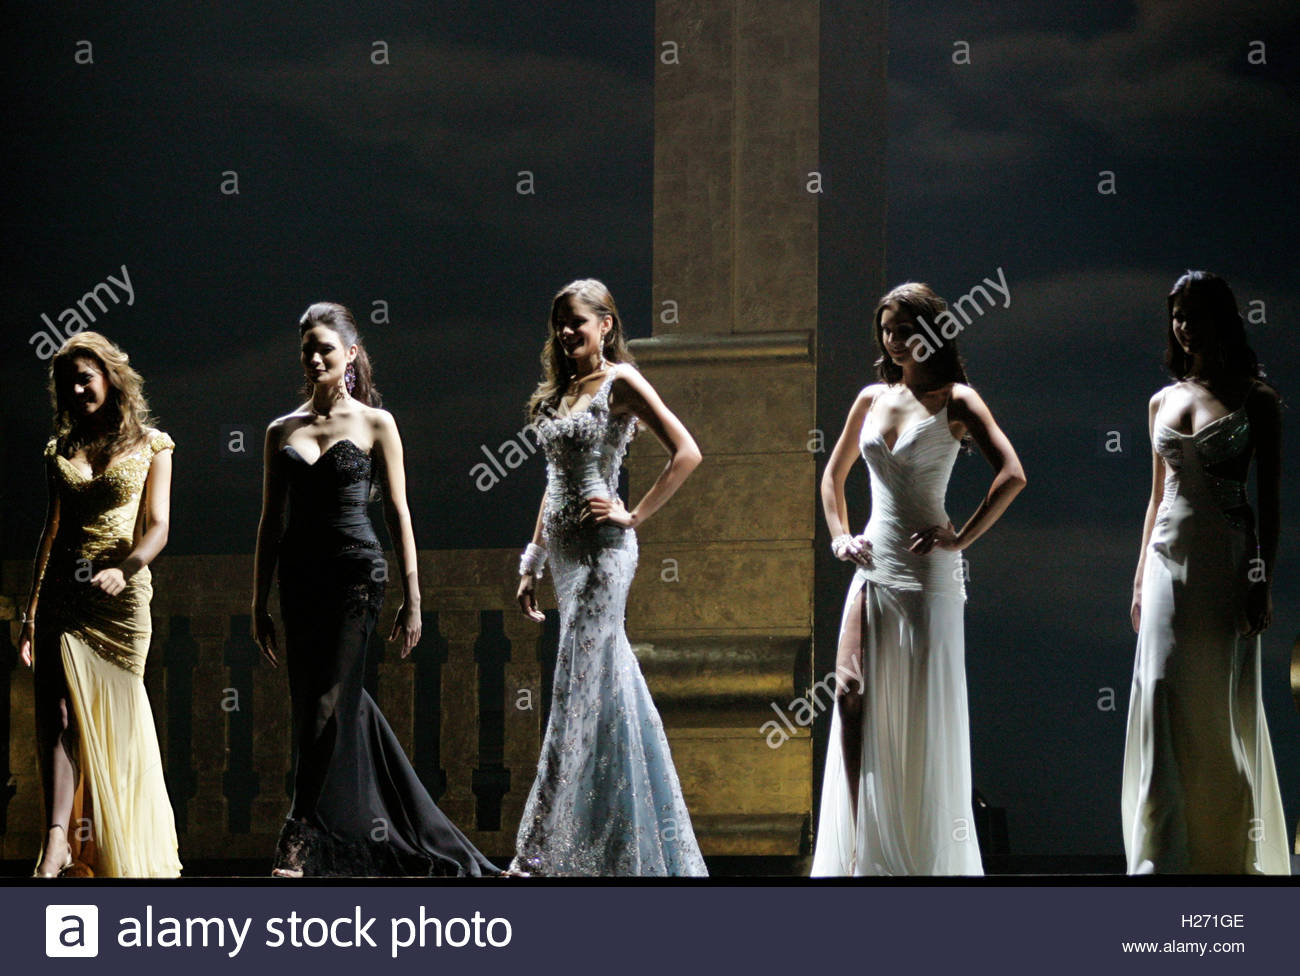 the-final-five-miss-universe-2005-contes